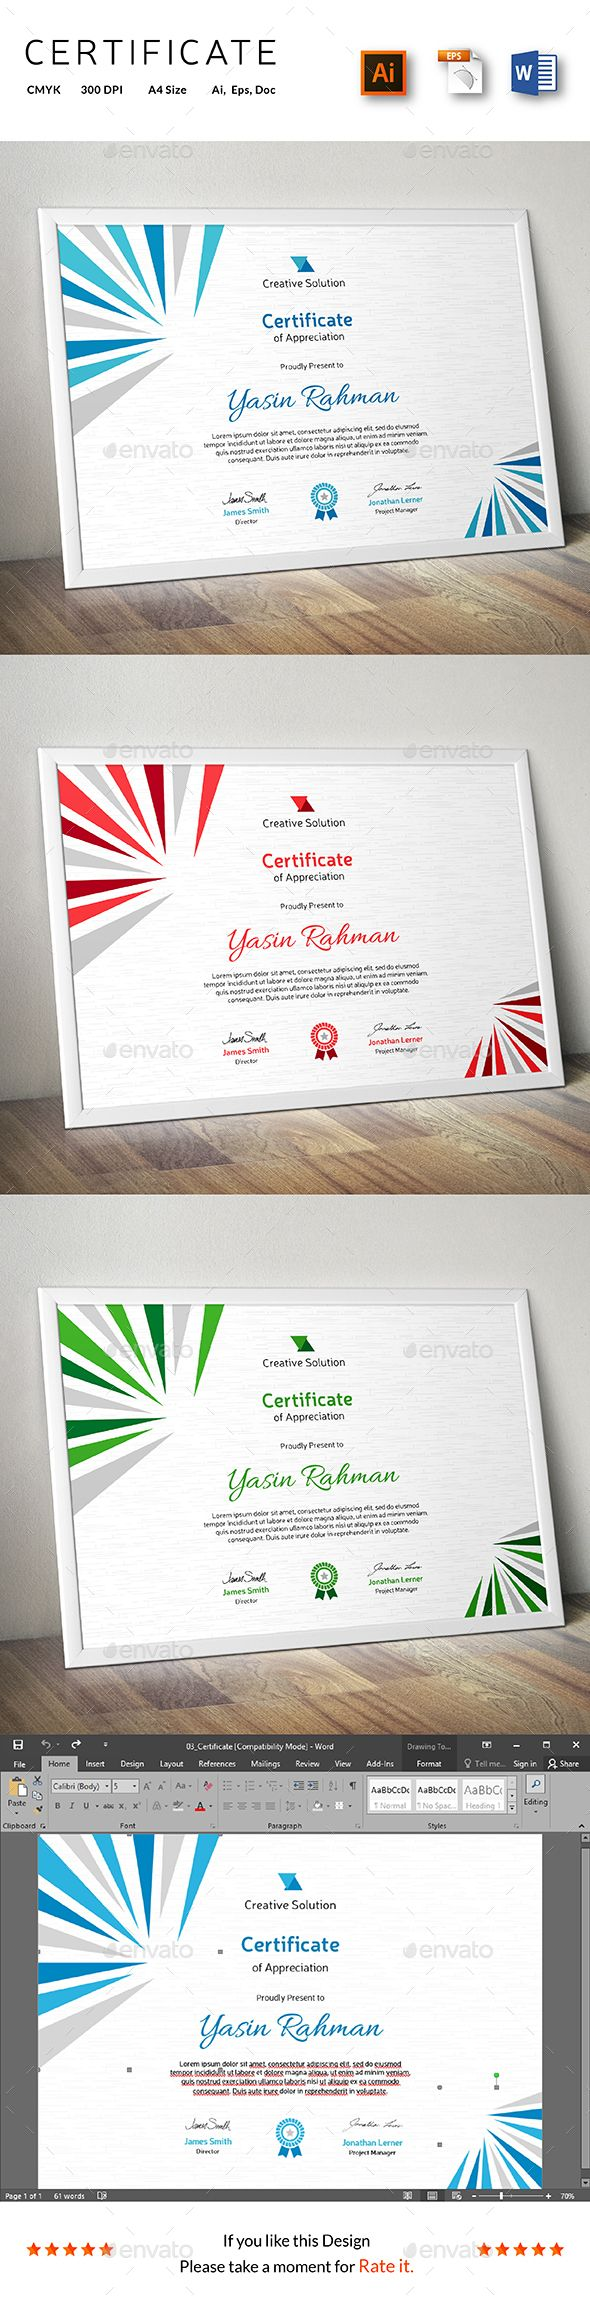 Certificate Template Vector EPS, AI. Download here: http://graphicriver.net/item/certificate/14298610?ref=ksioks